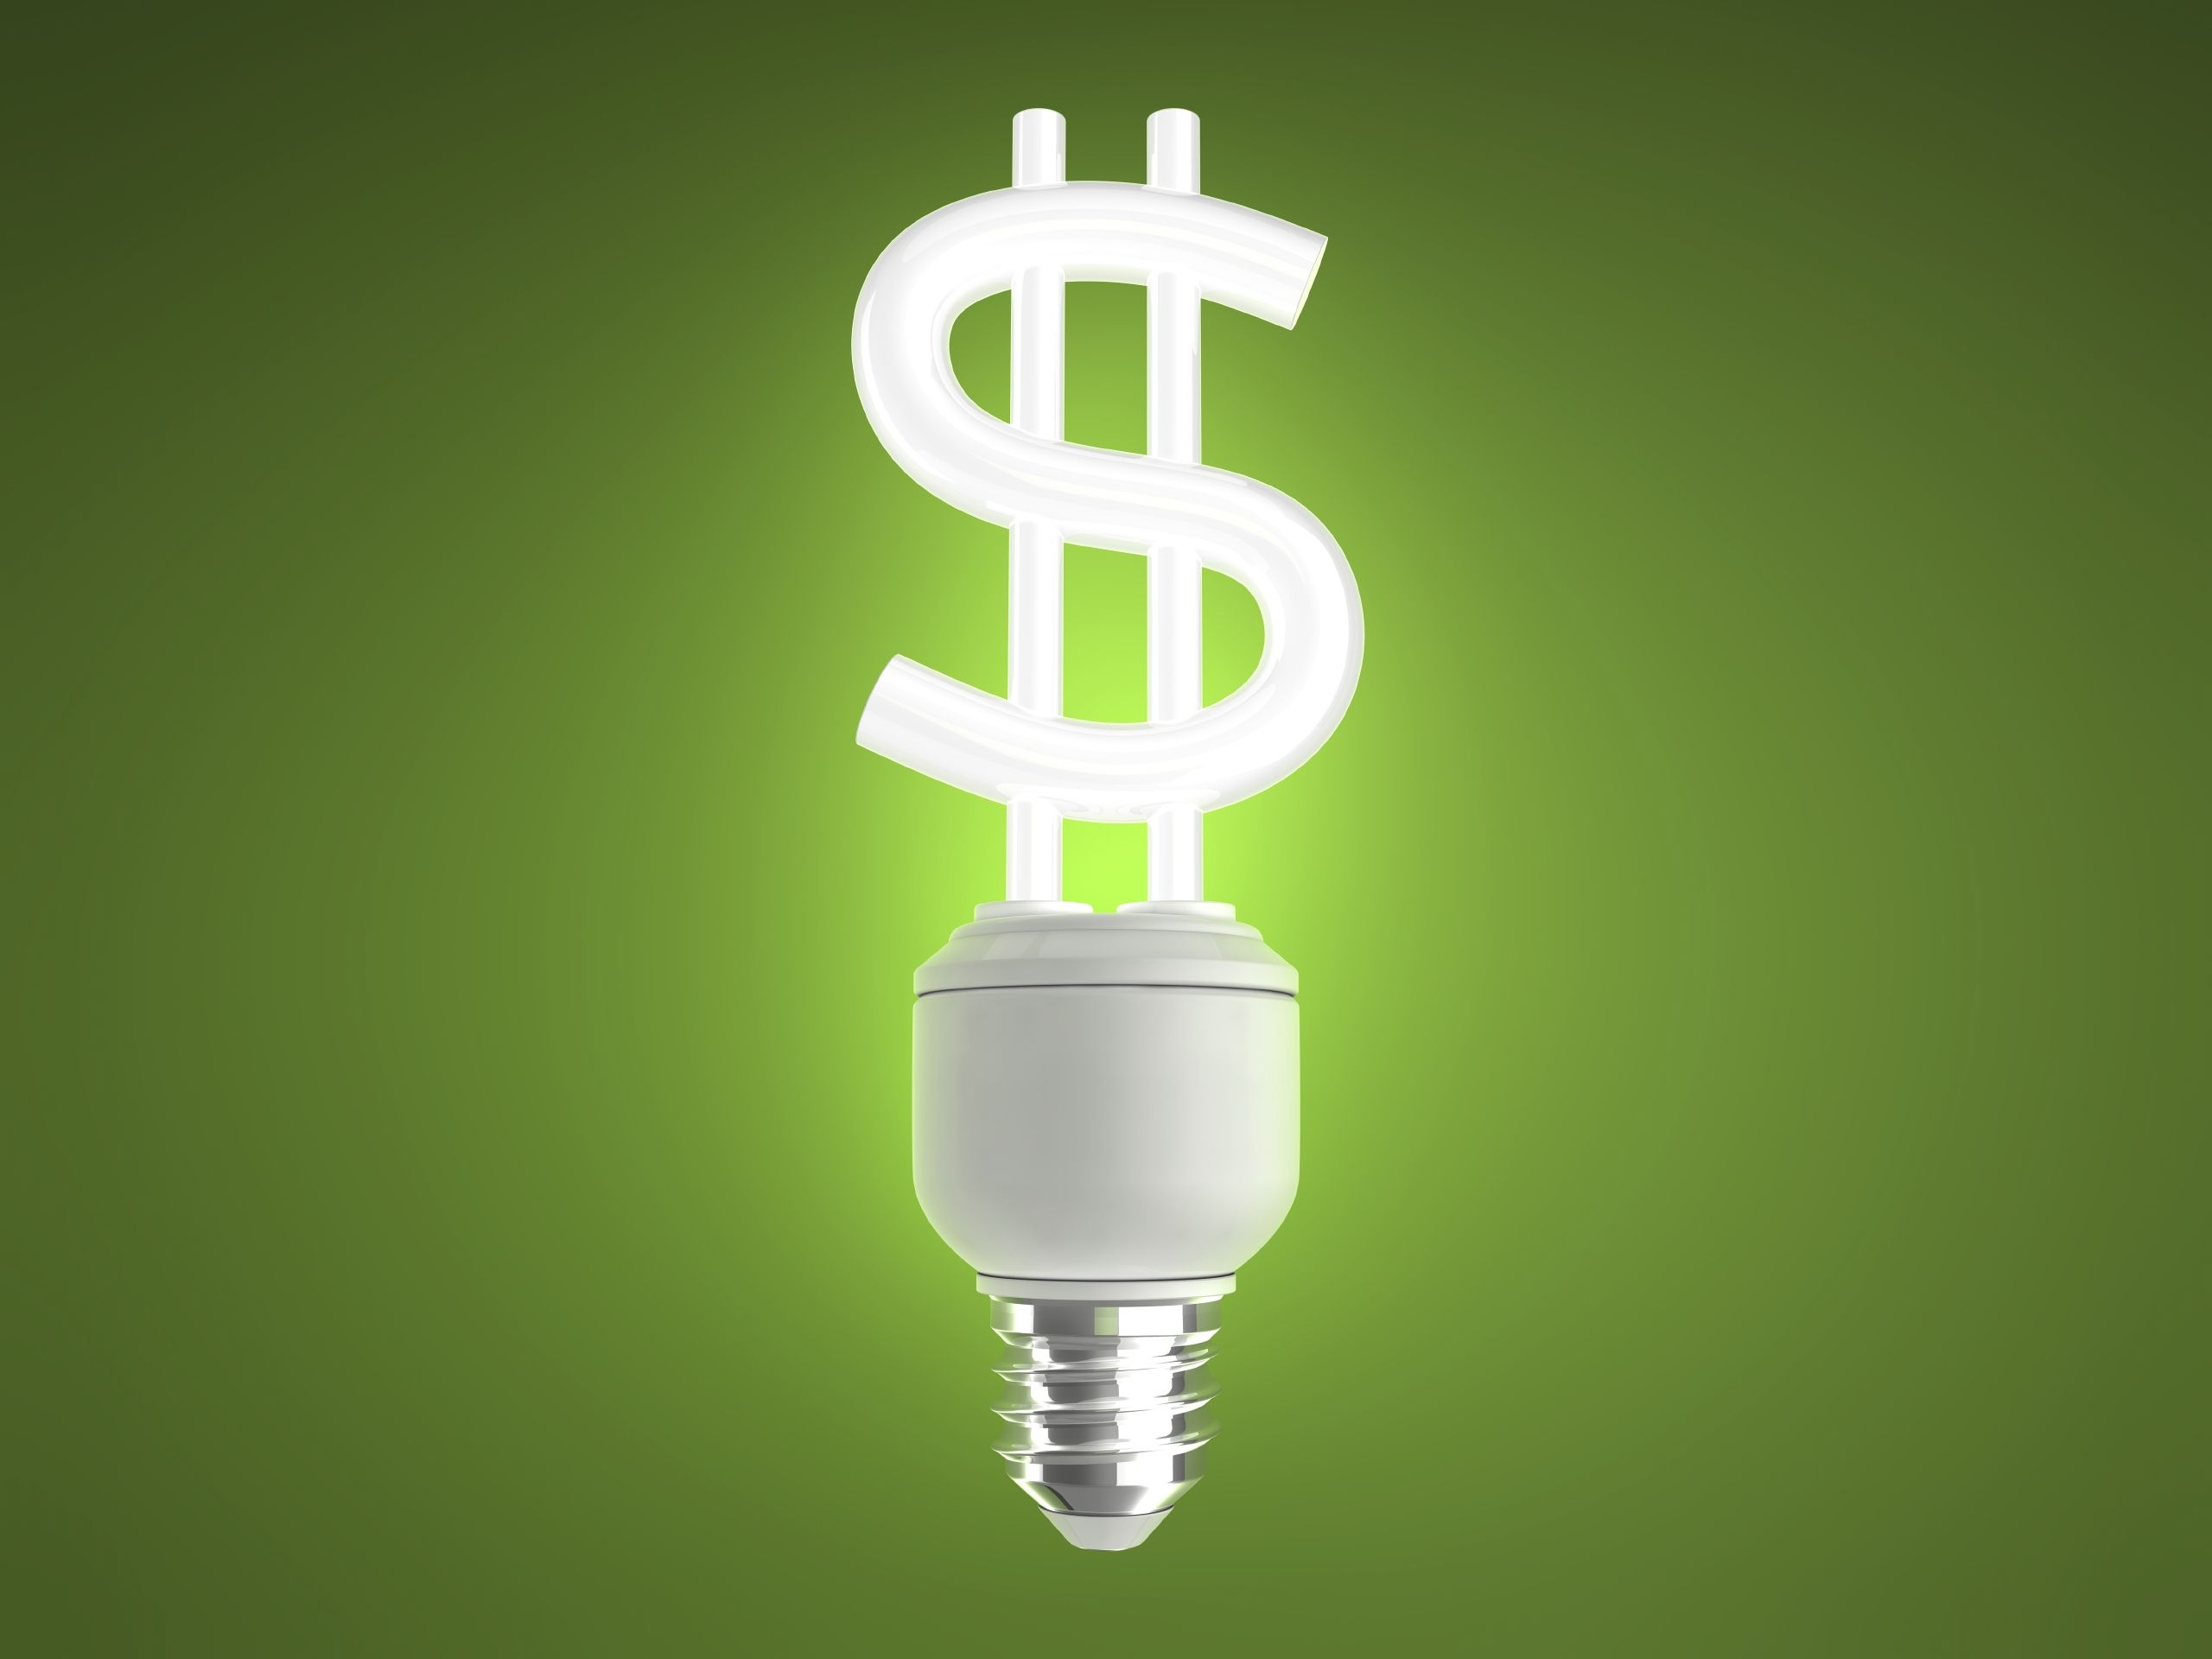 Energy_saving_money-4